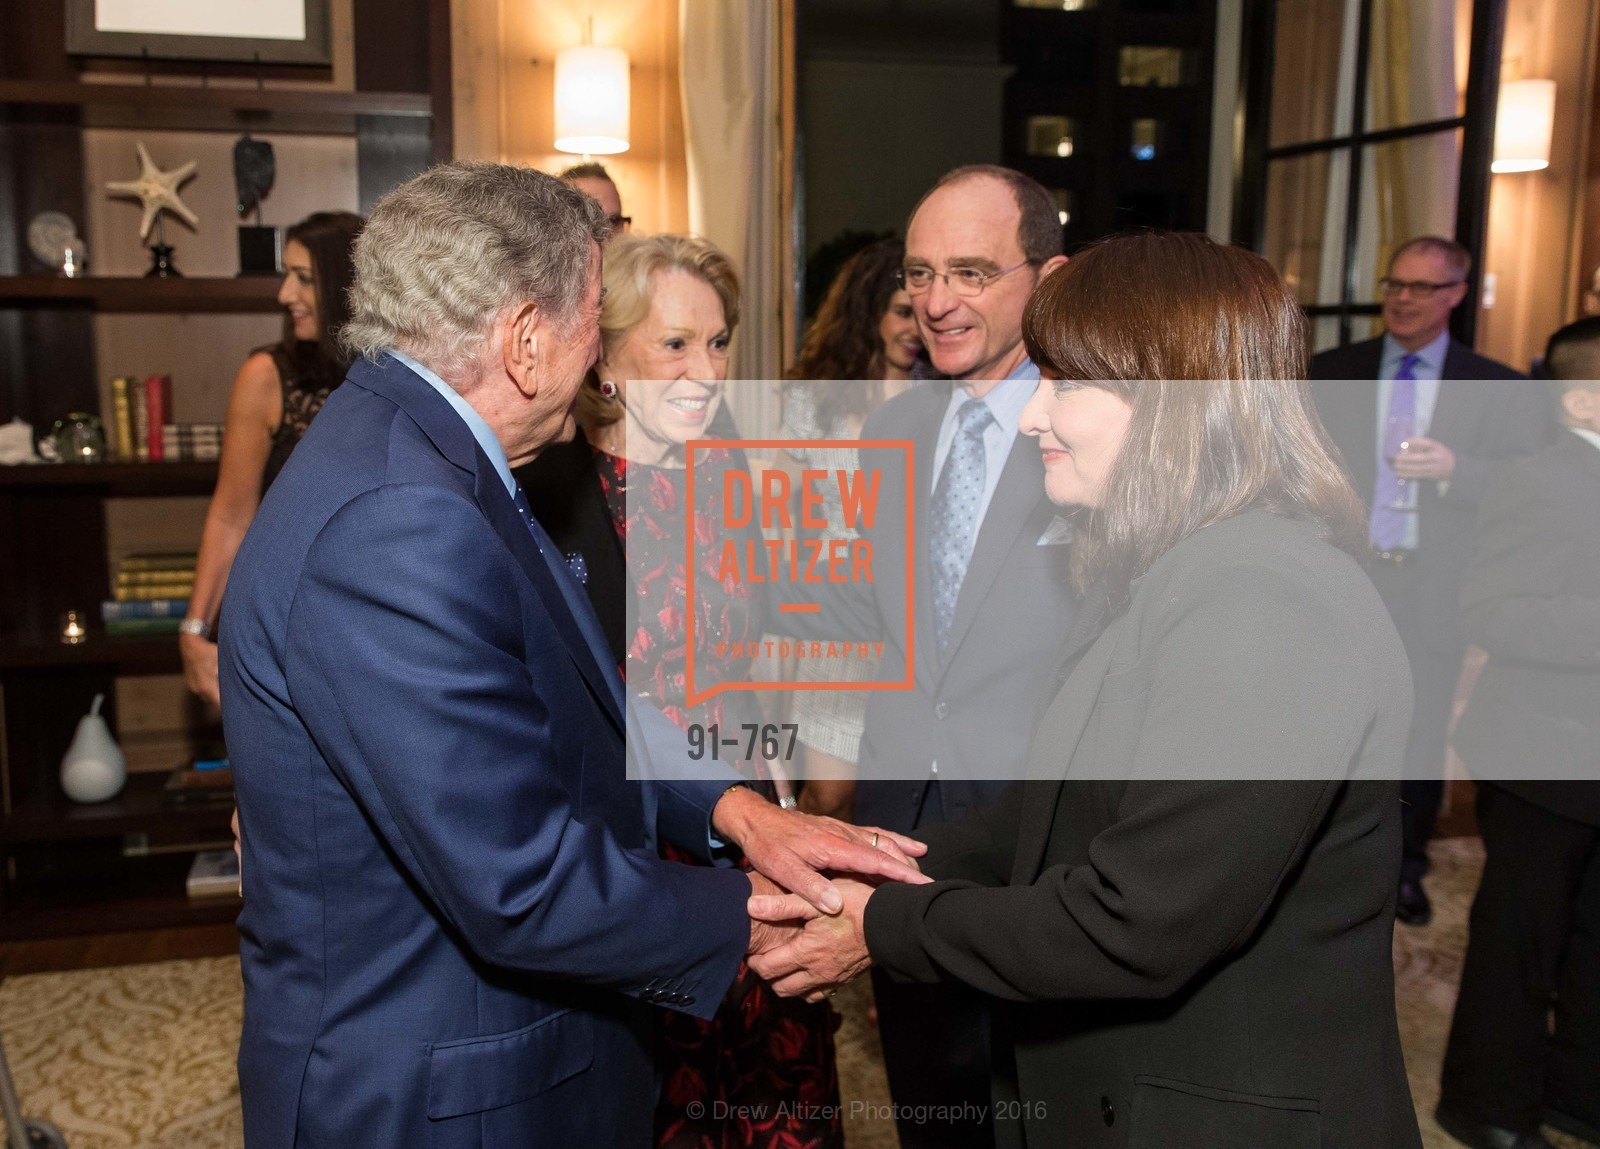 Tony Bennett, Charlotte Shultz, Tom Klein, Barbara Klein, A Special Reception with Tony Bennett, The Fairmont, San Francisco, The Penthouse Suite, January 26th, 2016,Drew Altizer, Drew Altizer Photography, full-service agency, private events, San Francisco photographer, photographer california